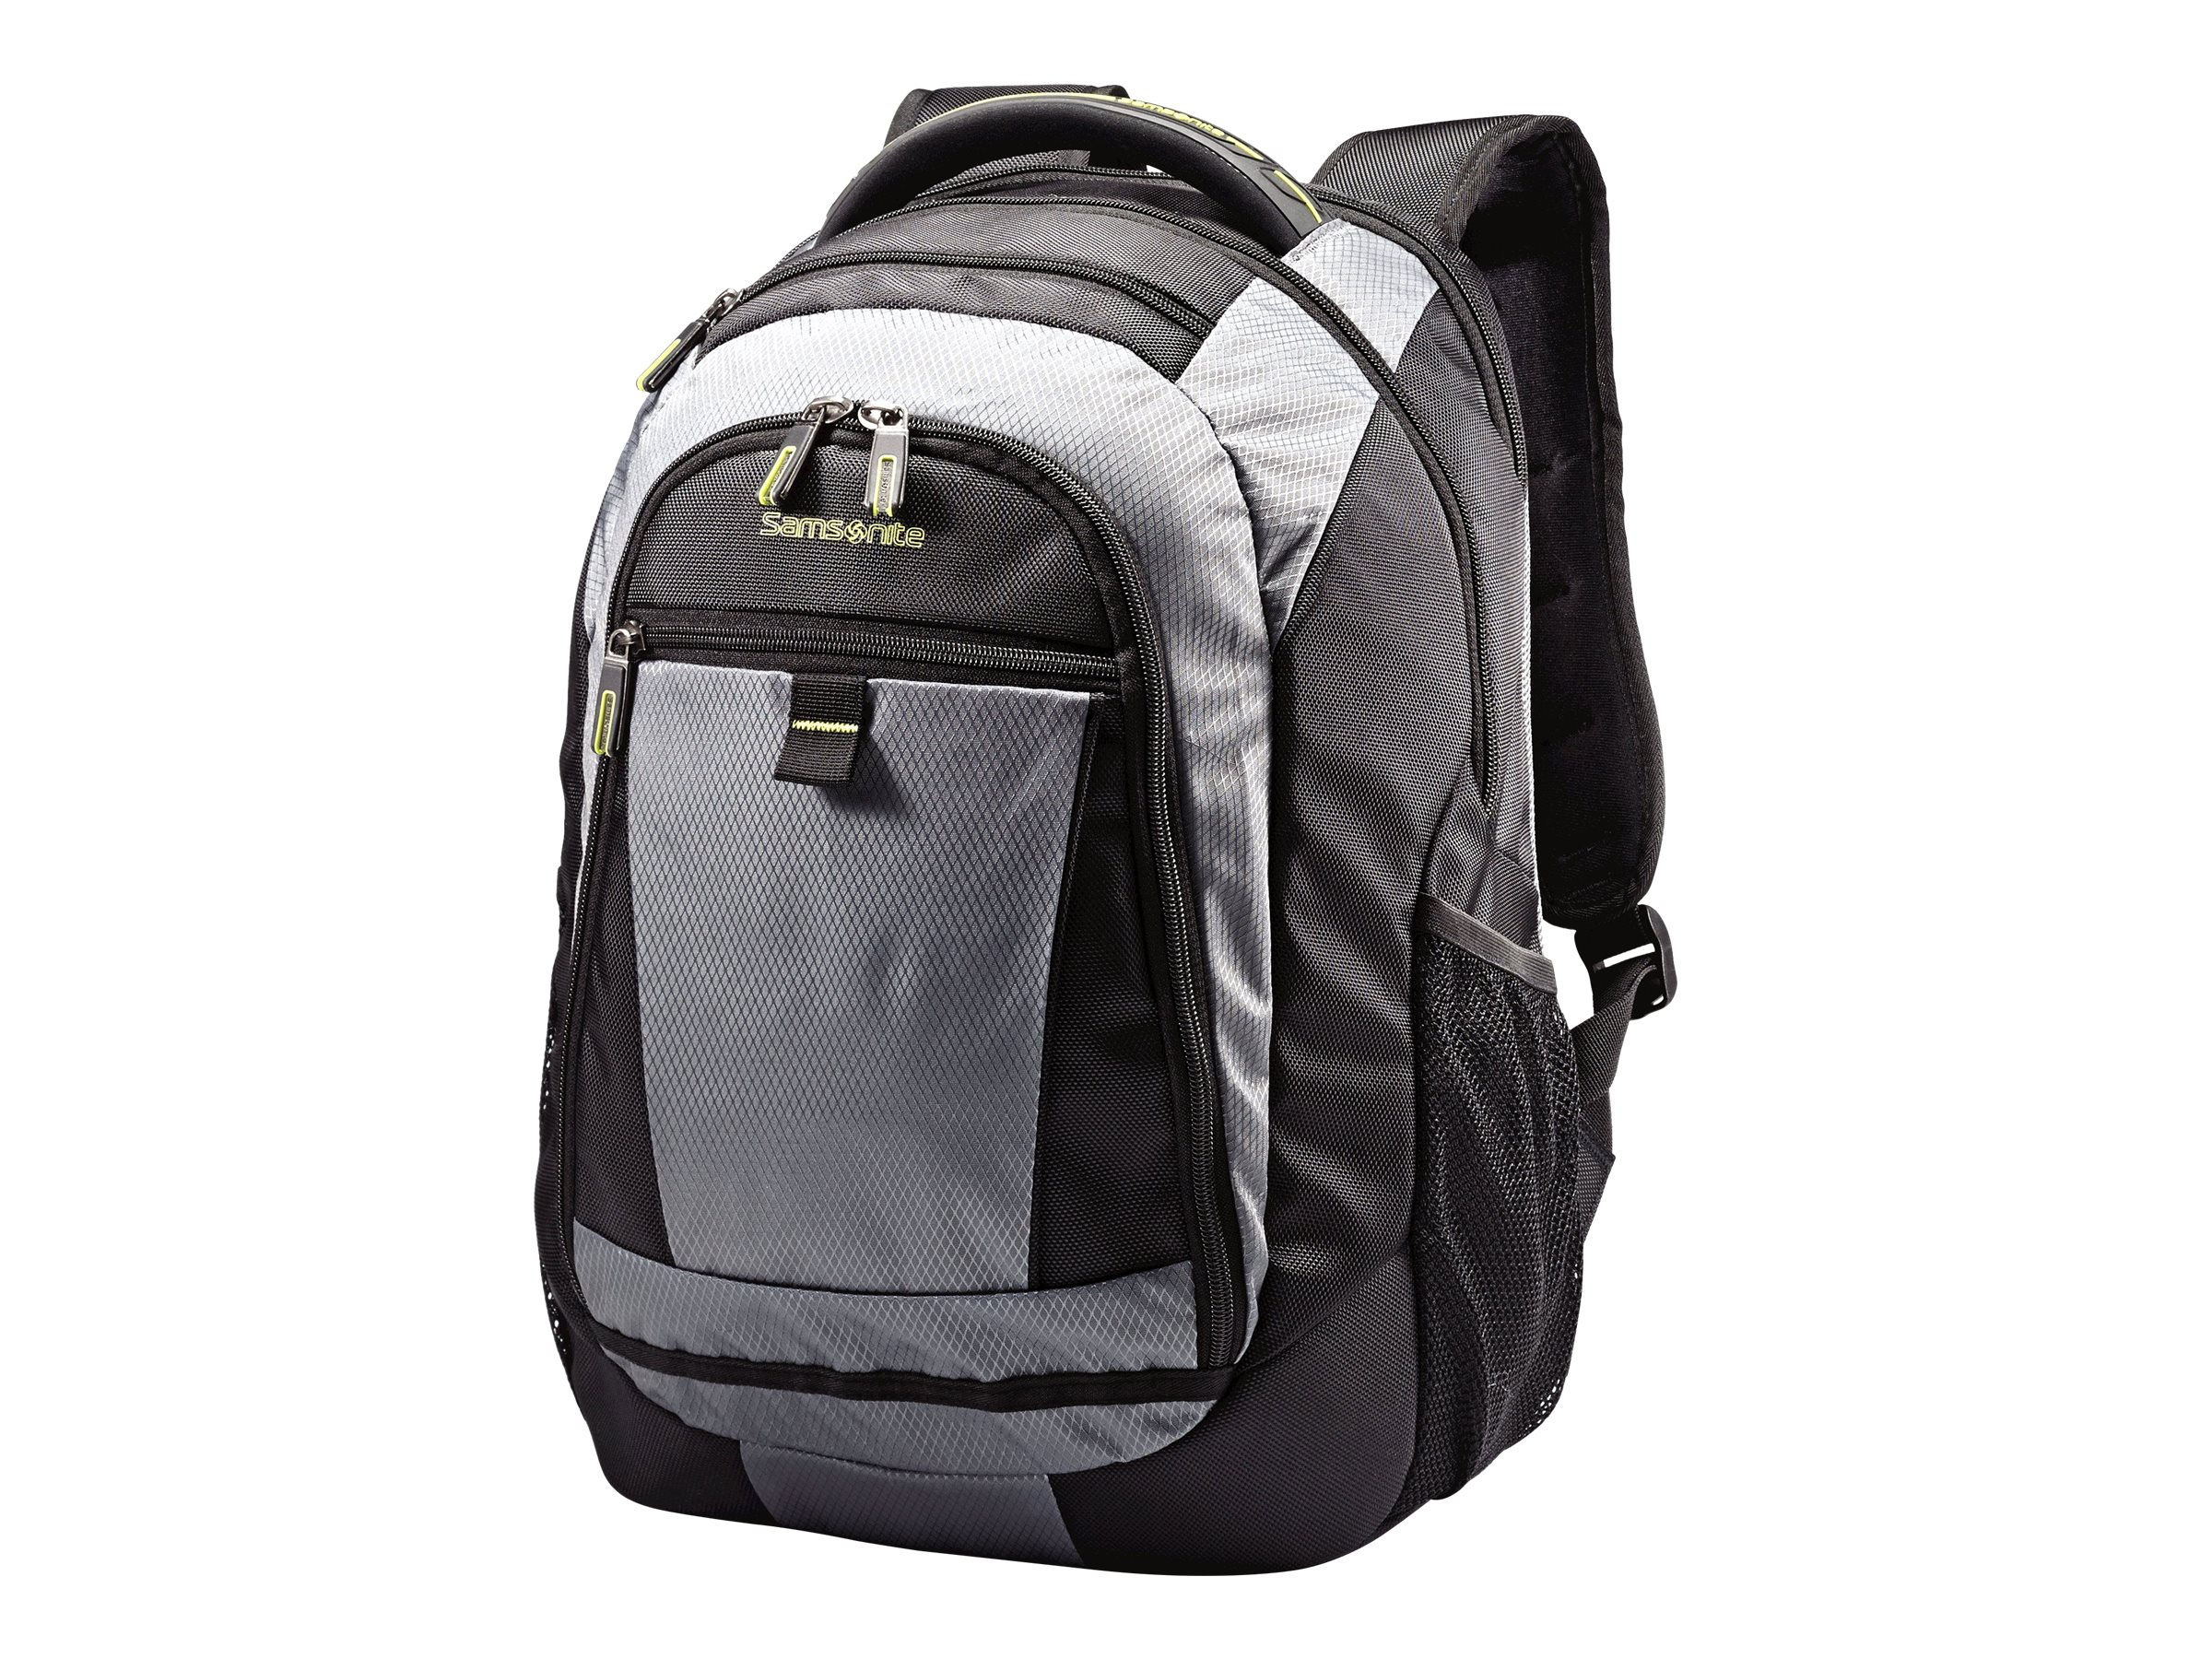 Stephen Gould Tectonic 2 Medium Backpack 15.6, Black Lime